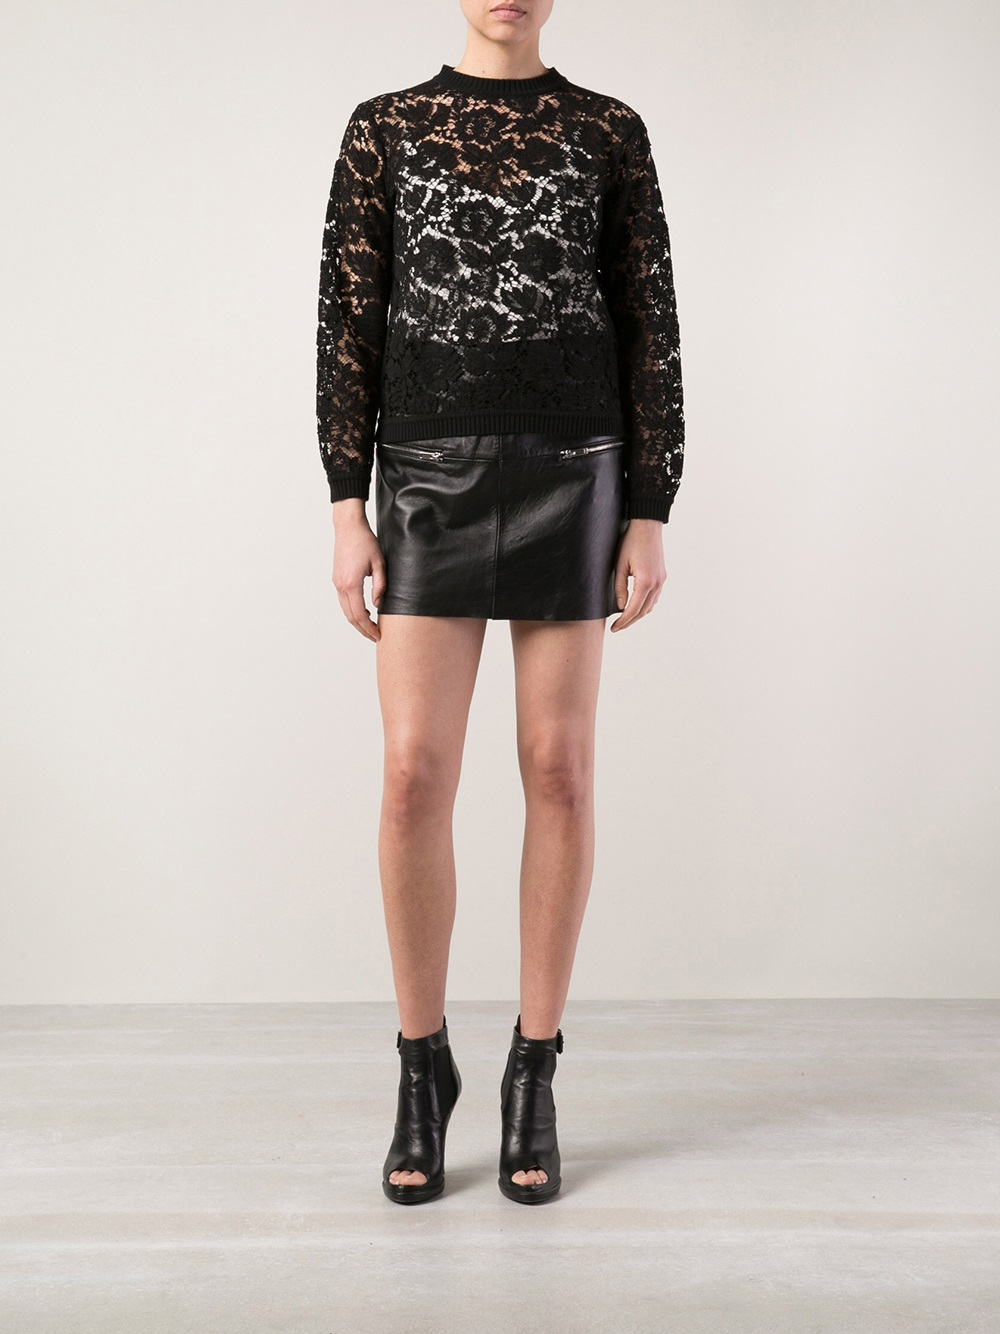 Valentino Studded Lace & Knit Sweater in Black - Save 34% | Lyst